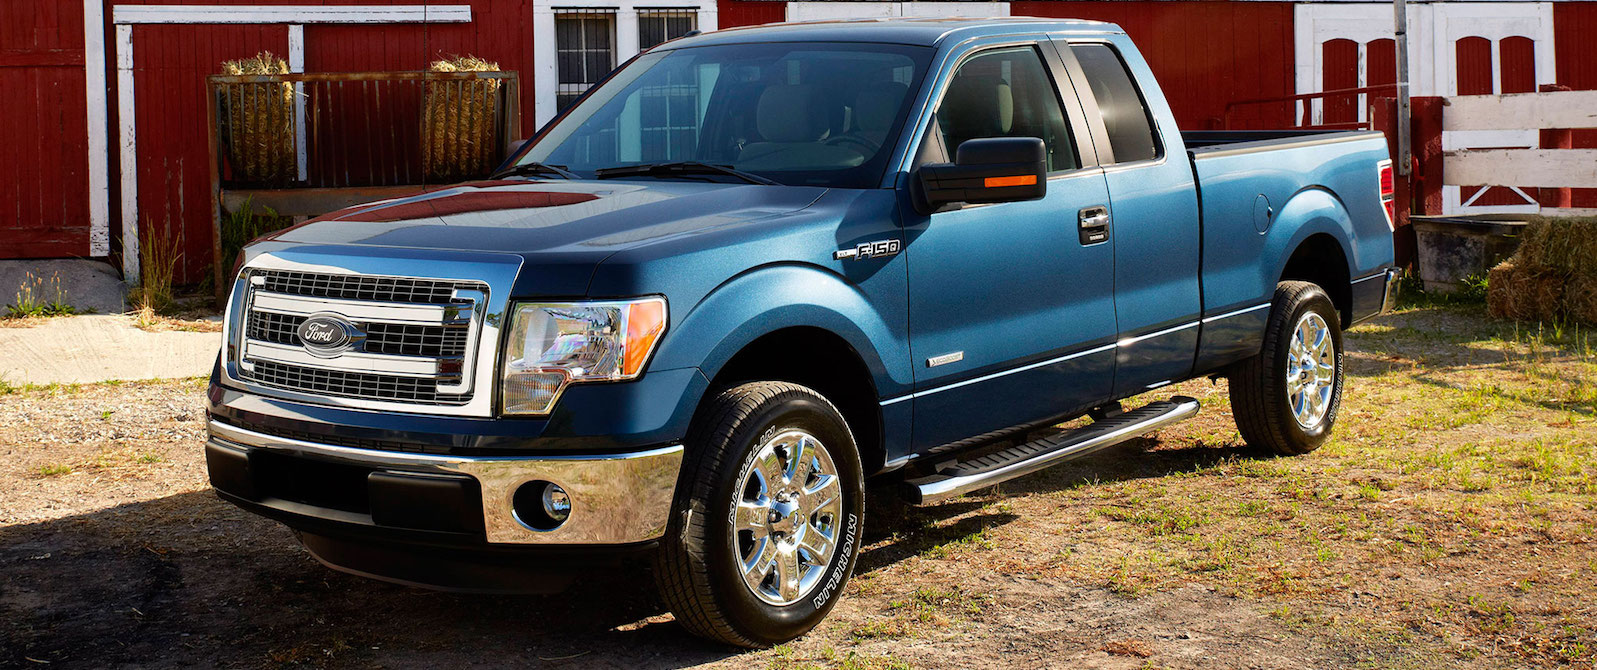 Ford F-150 12th-Gen